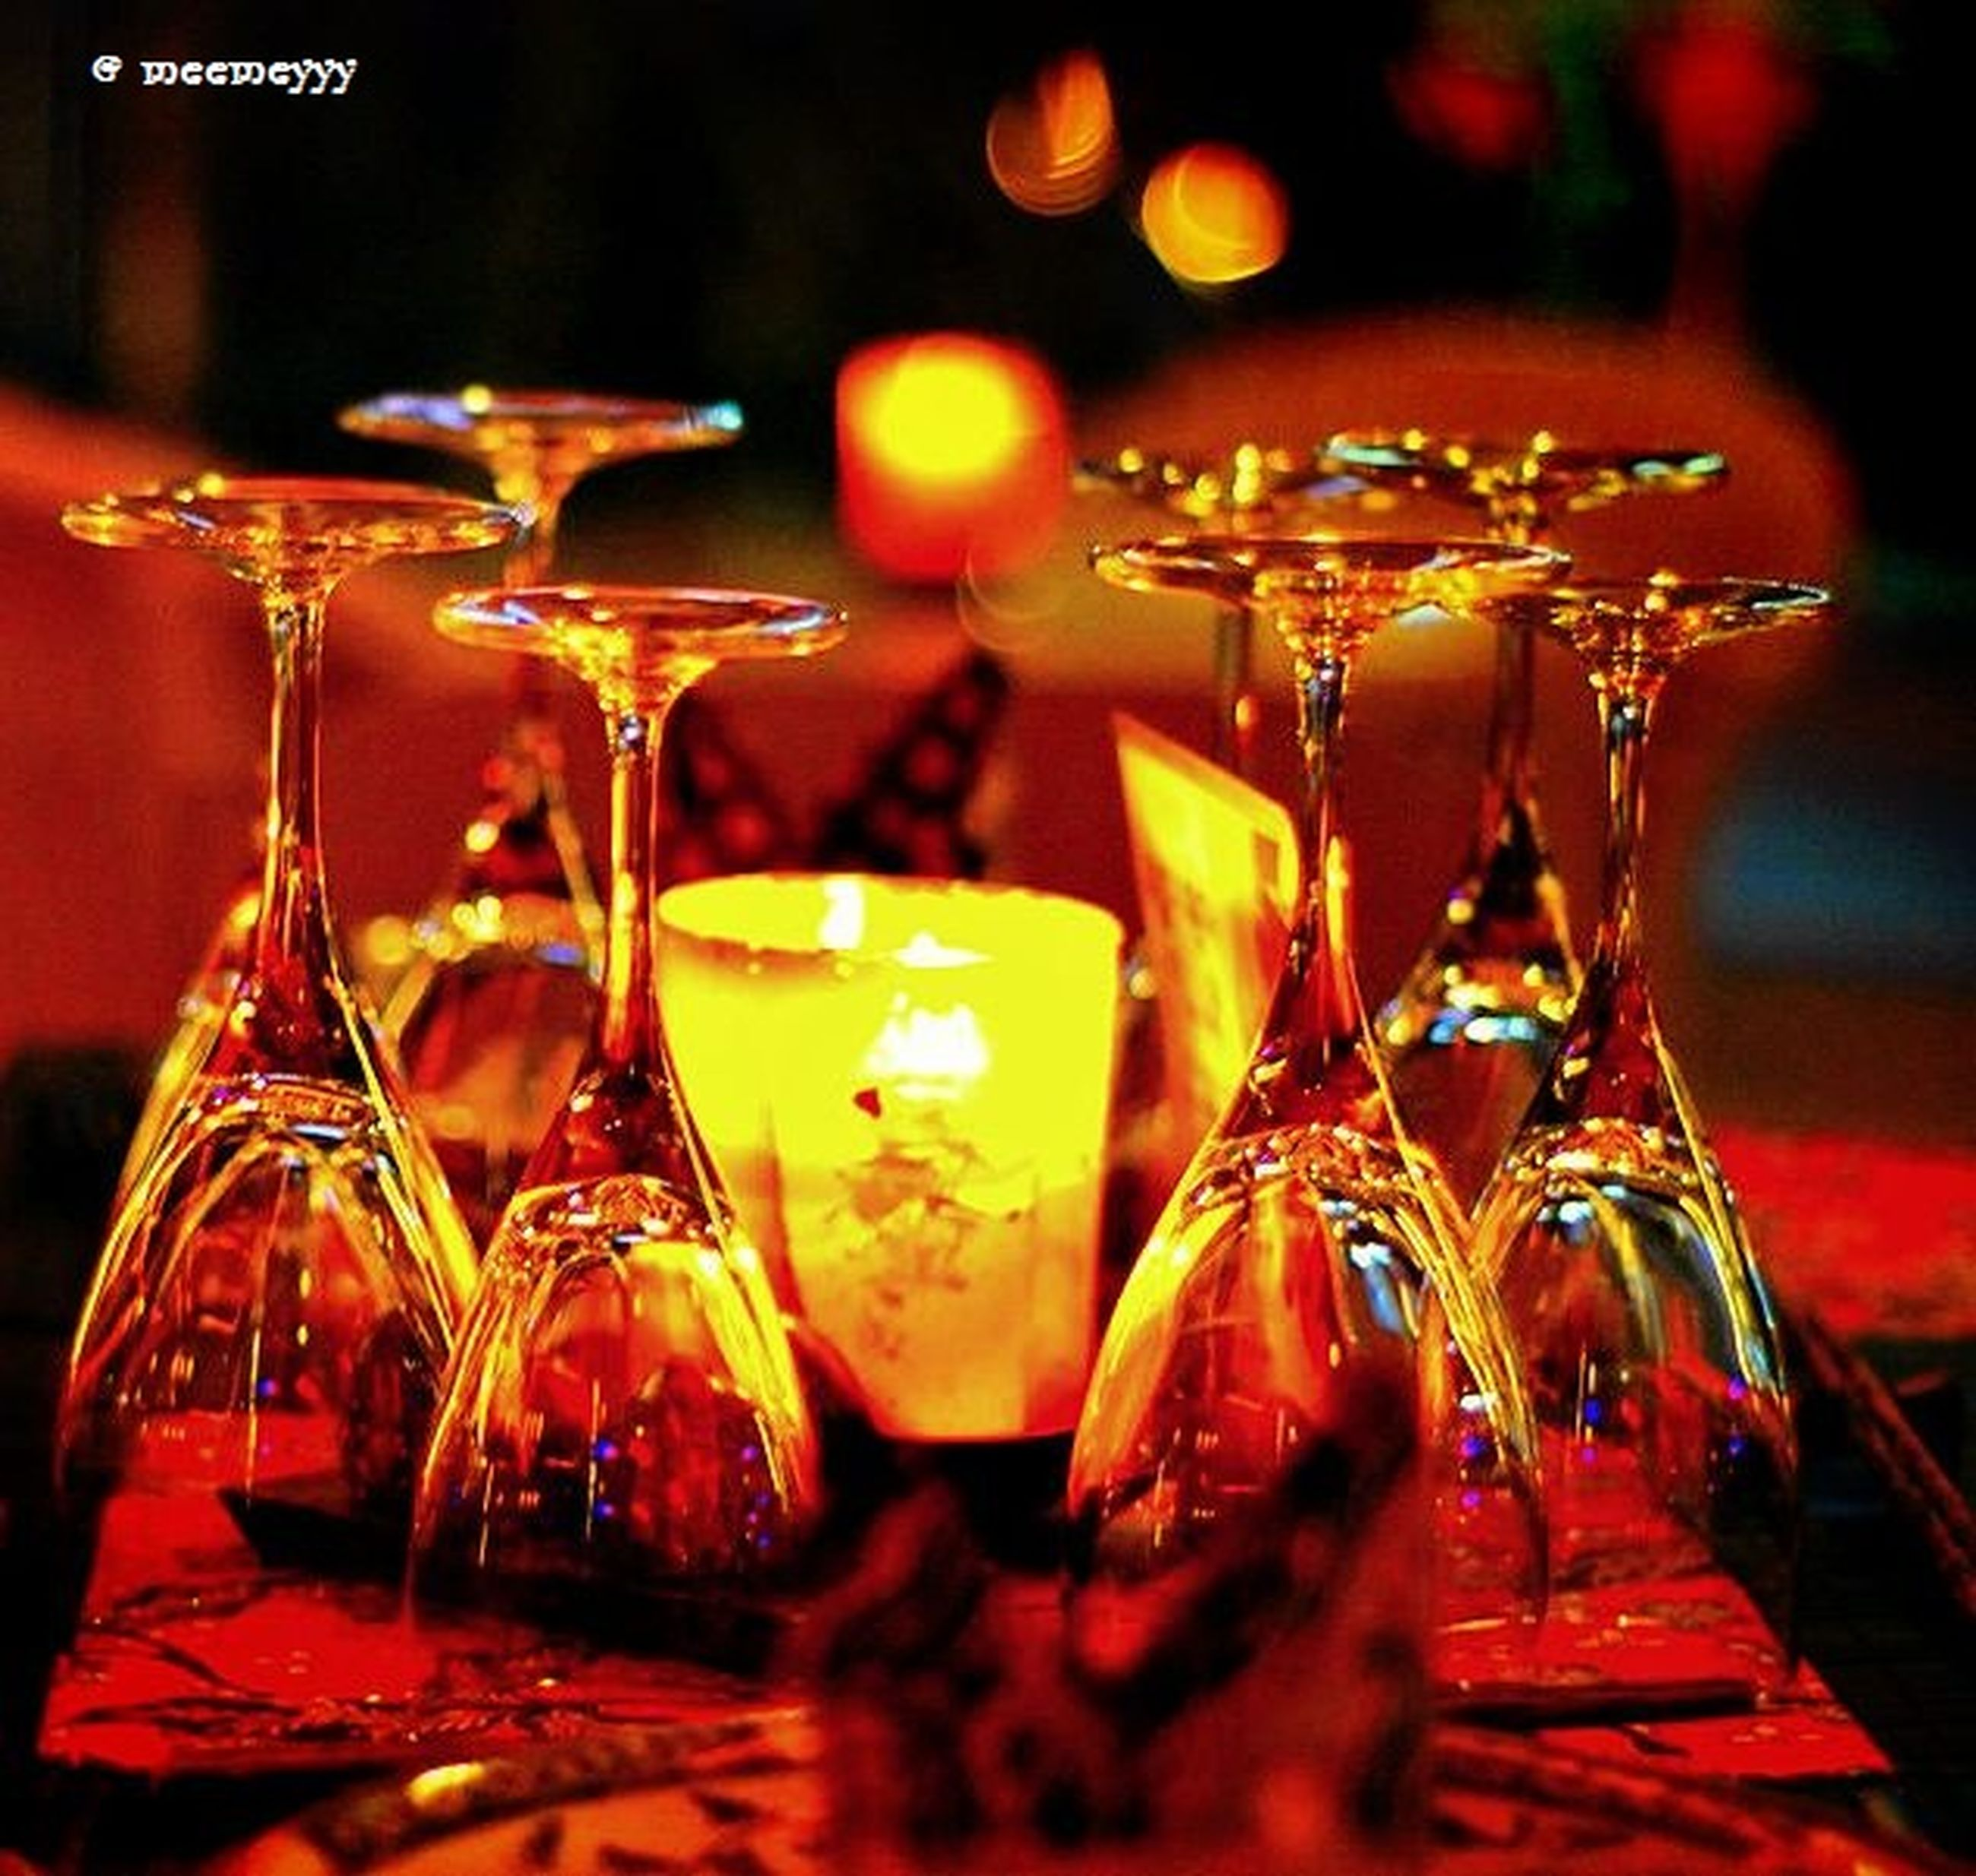 illuminated, indoors, celebration, night, decoration, tradition, focus on foreground, christmas, cultures, table, selective focus, religion, still life, christmas decoration, close-up, red, hanging, lighting equipment, celebration event, christmas lights